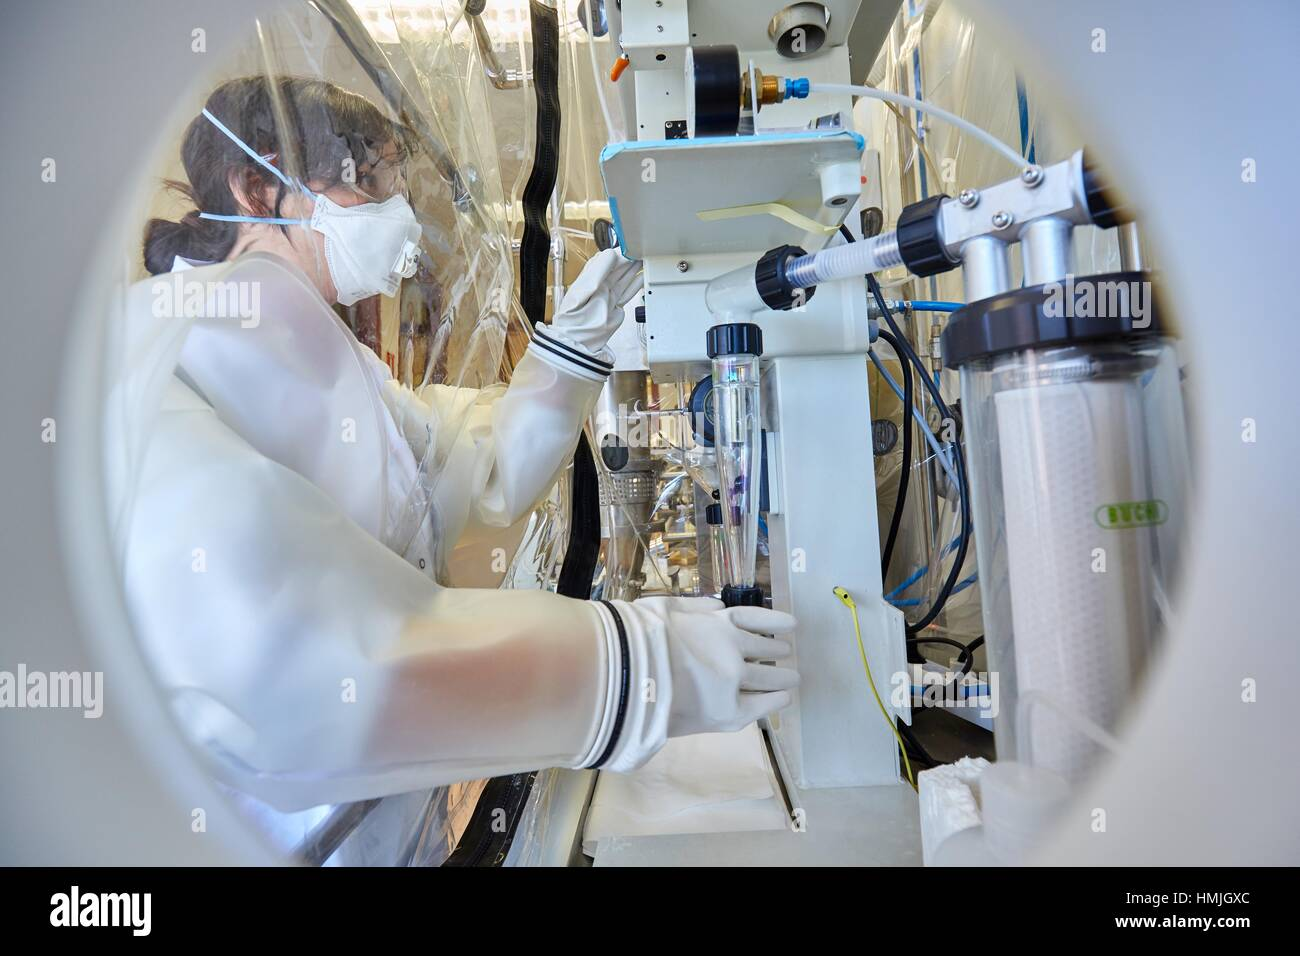 Spray Dryer. Hood. Pharmaceutical Development Laboratory. Pre-formulation, design and development of drugs and new - Stock Image